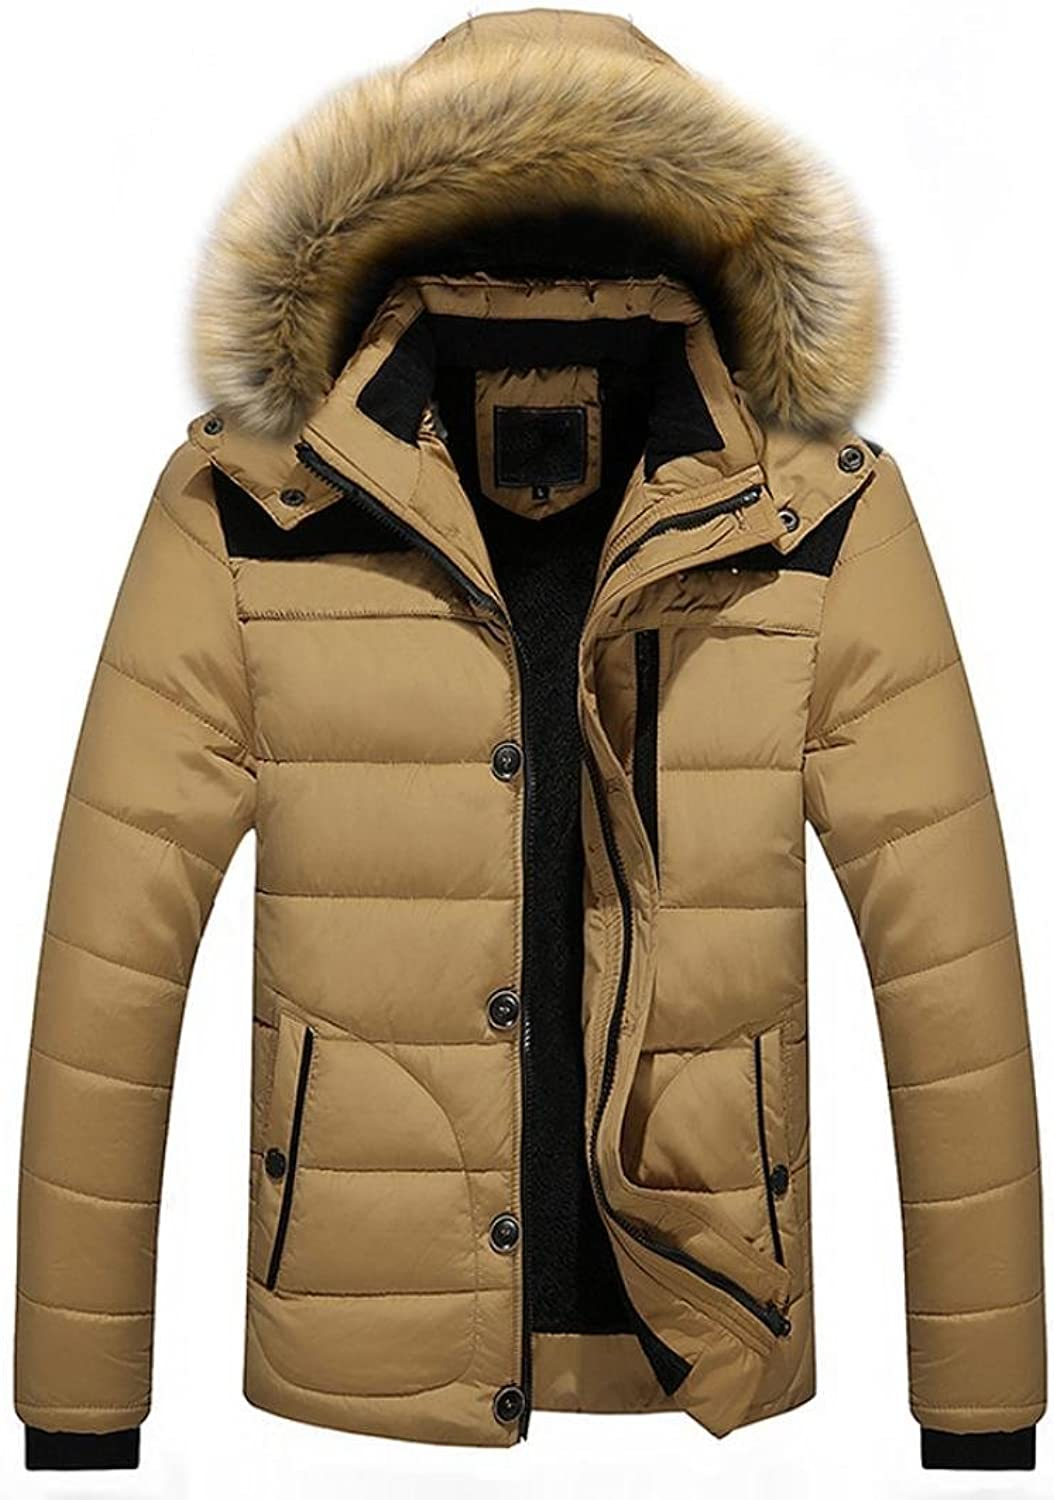 13bcd8466e6 Men's Fur Hooded Jacket Coats Outerwear Winter Winter Winter Warm Thick  Outwear for Mens 93b6d6